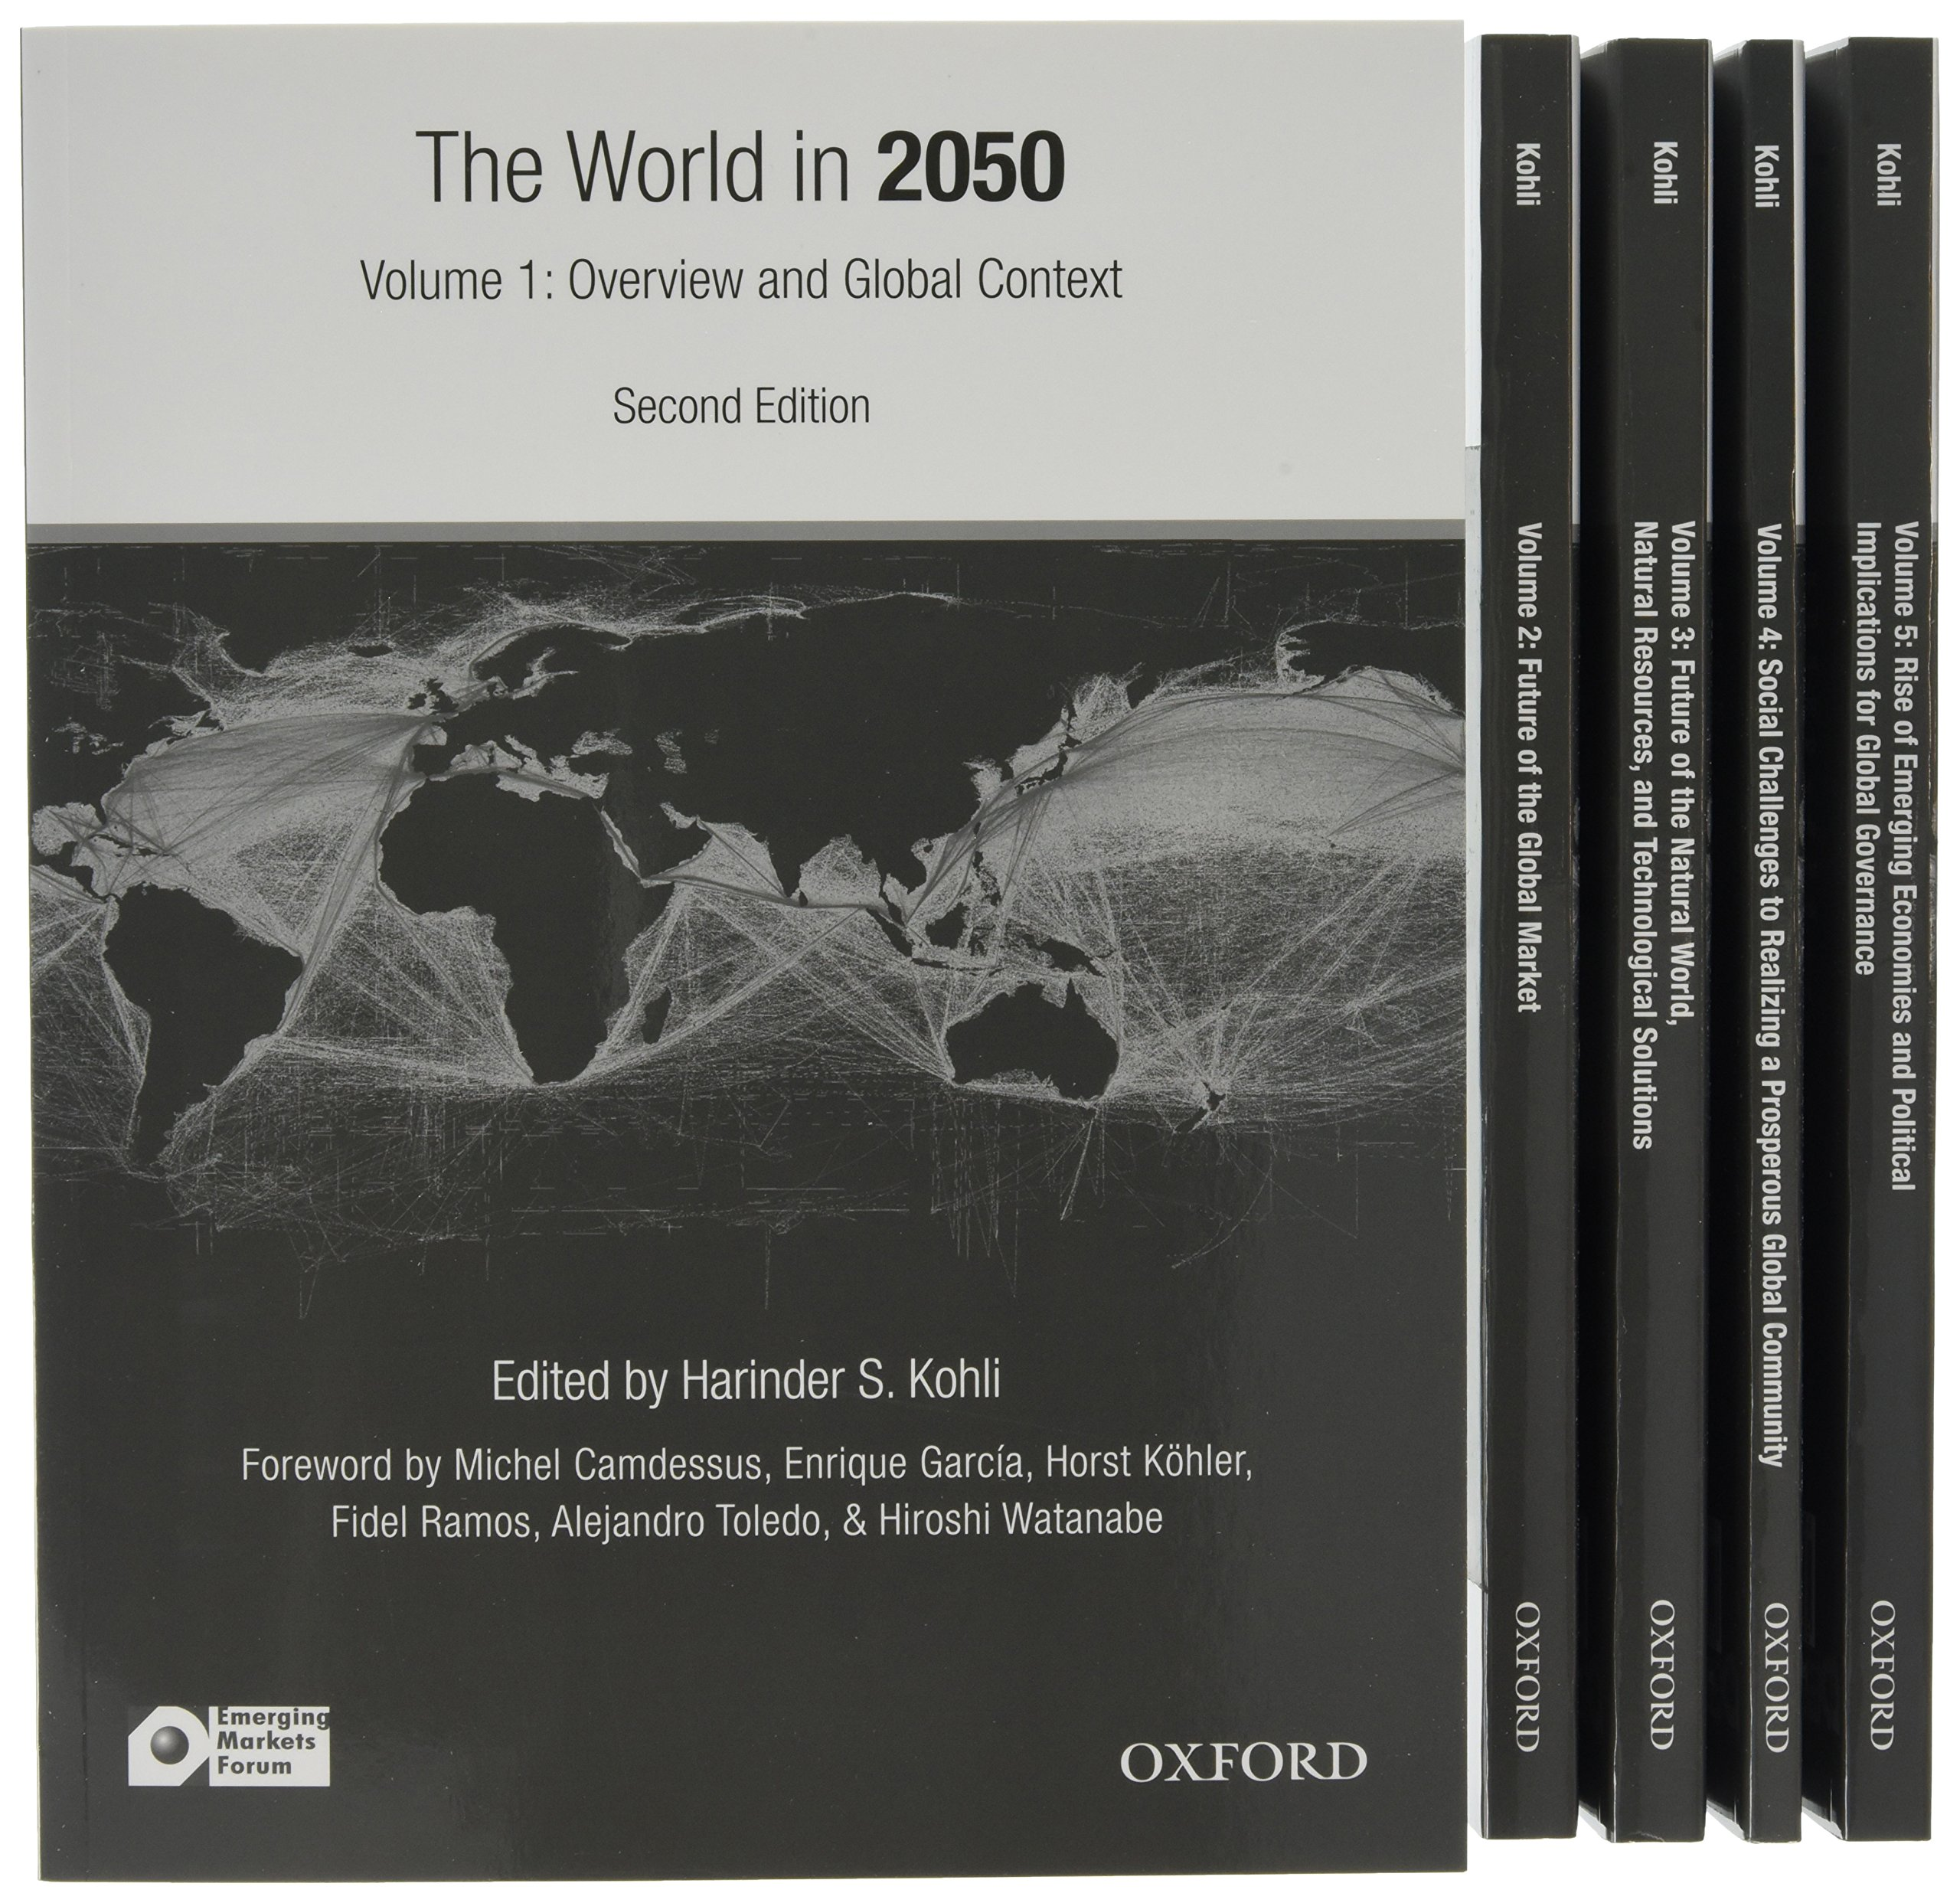 The World in 2050: Striving for a More Just, Prosperous, and Harmonious Global Community by Oxford Univ Pr